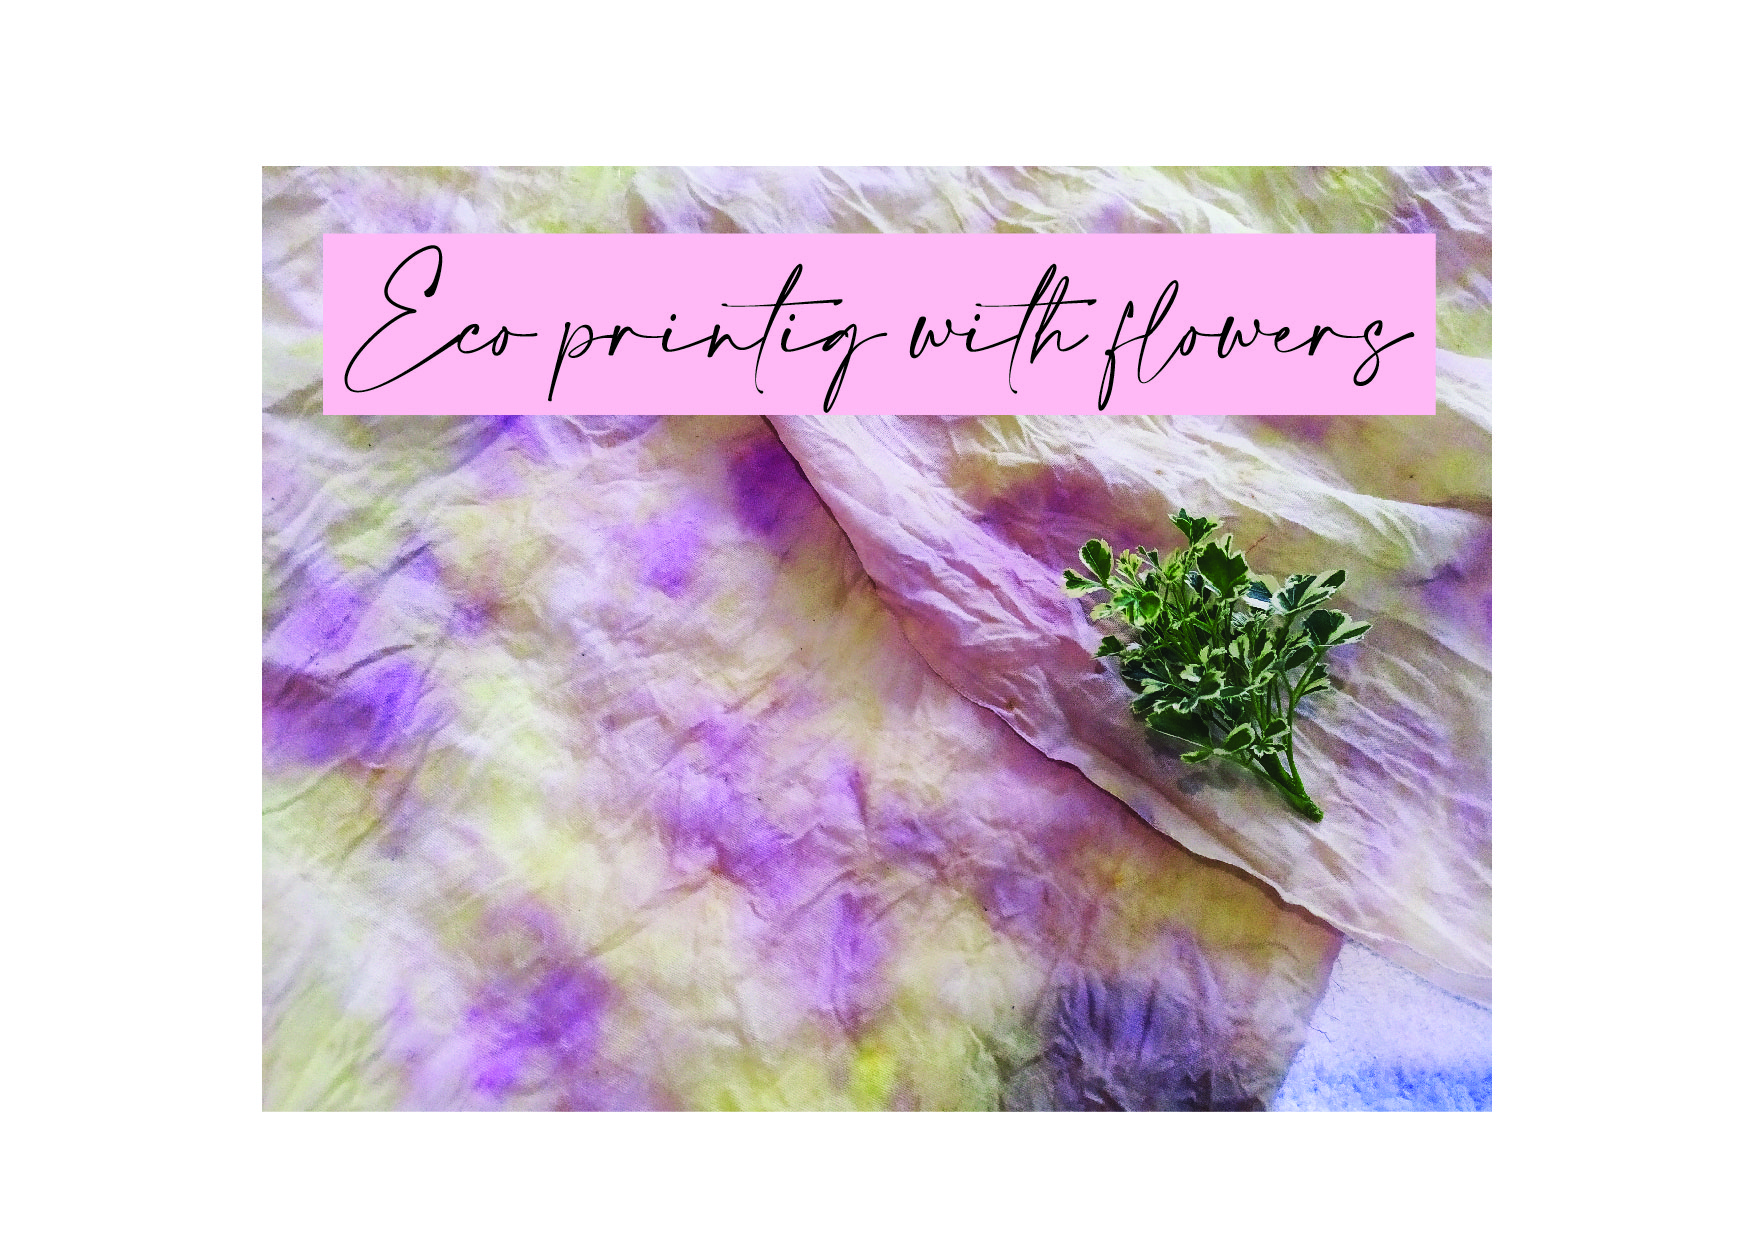 Eco printing with flowers